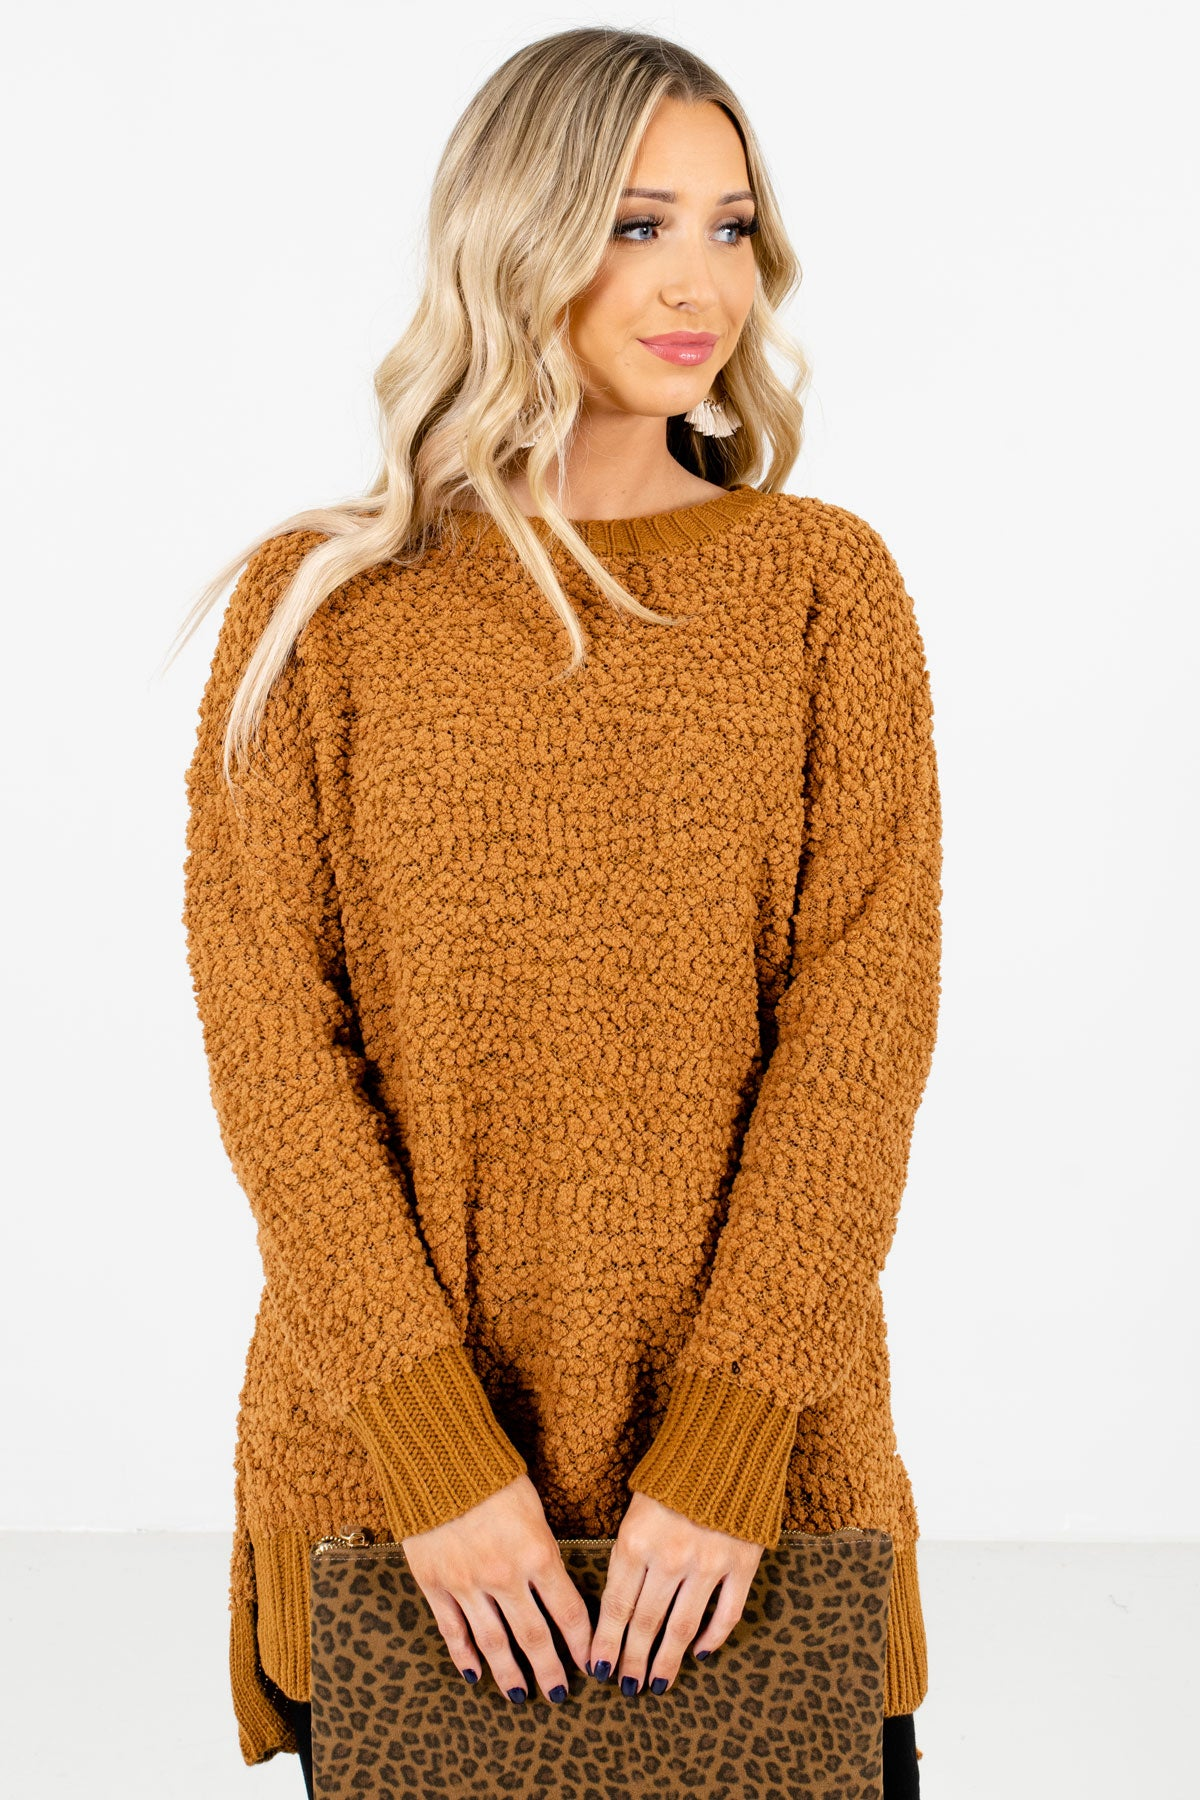 Women's Mustard Warm and Cozy Boutique Sweaters